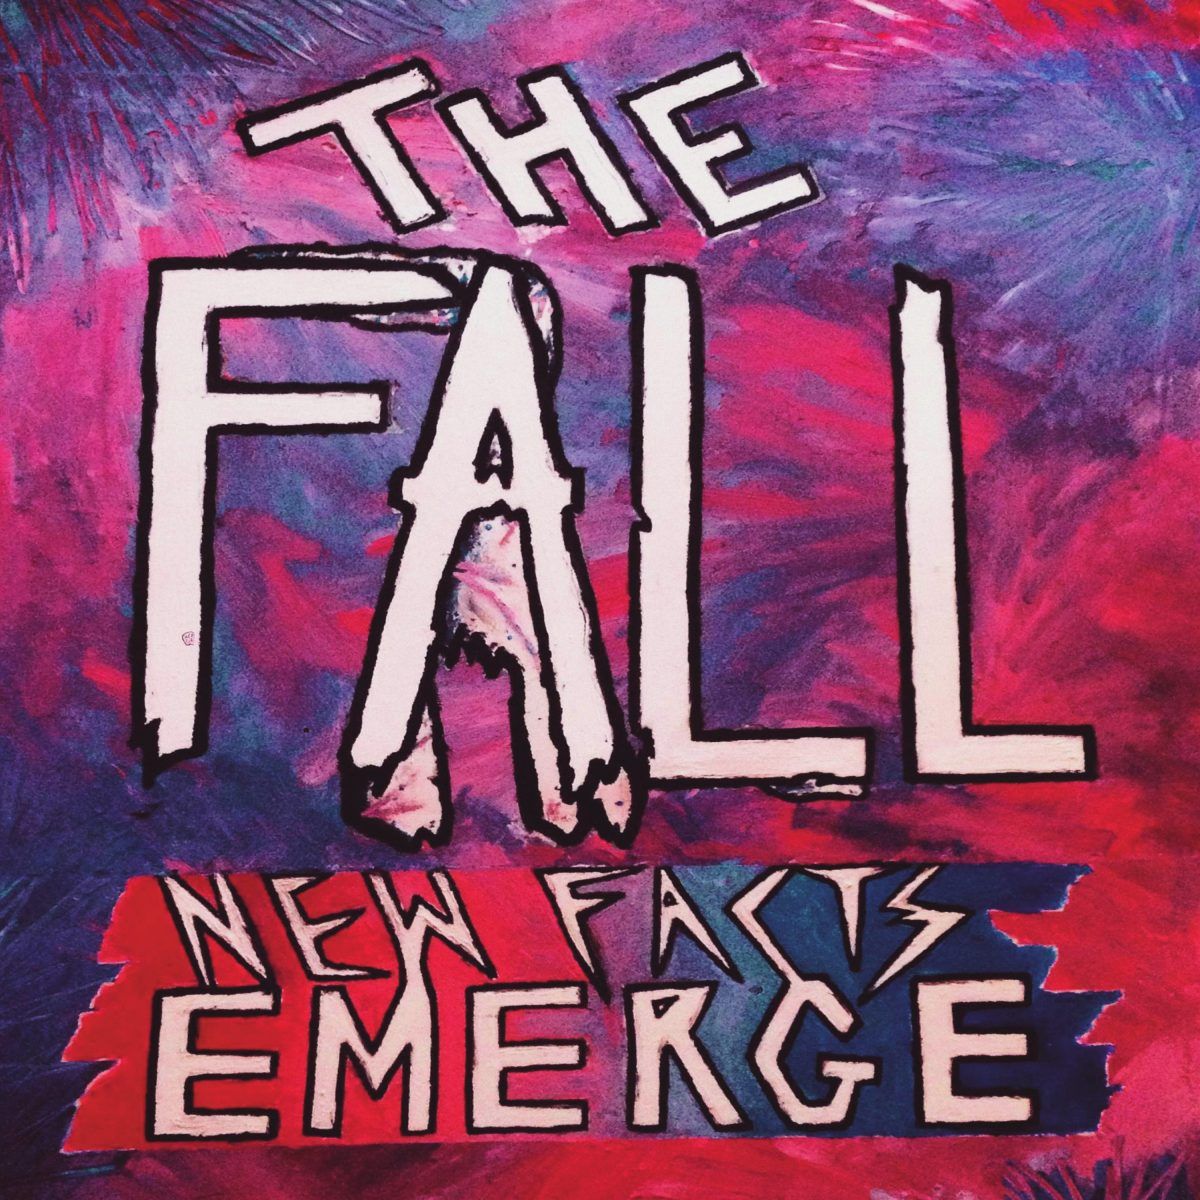 New-Facts-Emerge-Cover